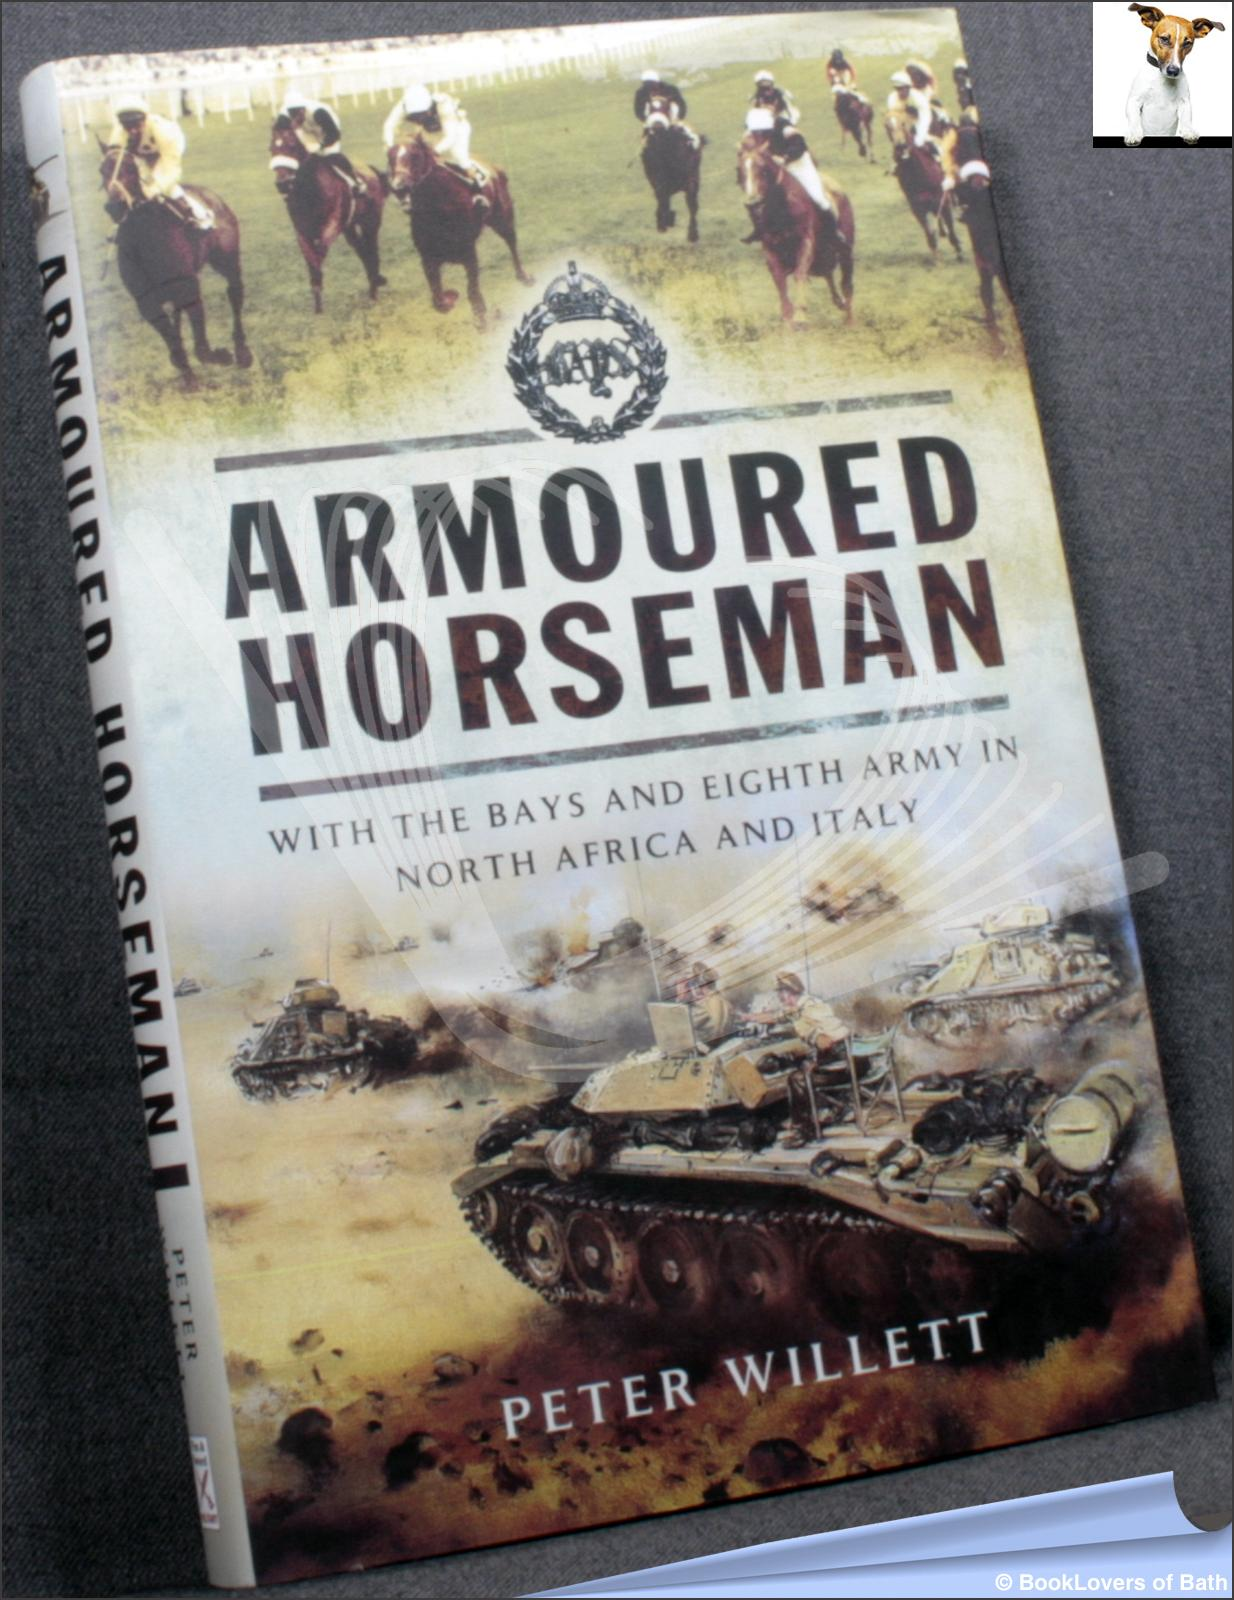 Armoured Horseman: With the Bays and Eighty Army in North Africa and Italy - Peter Willett